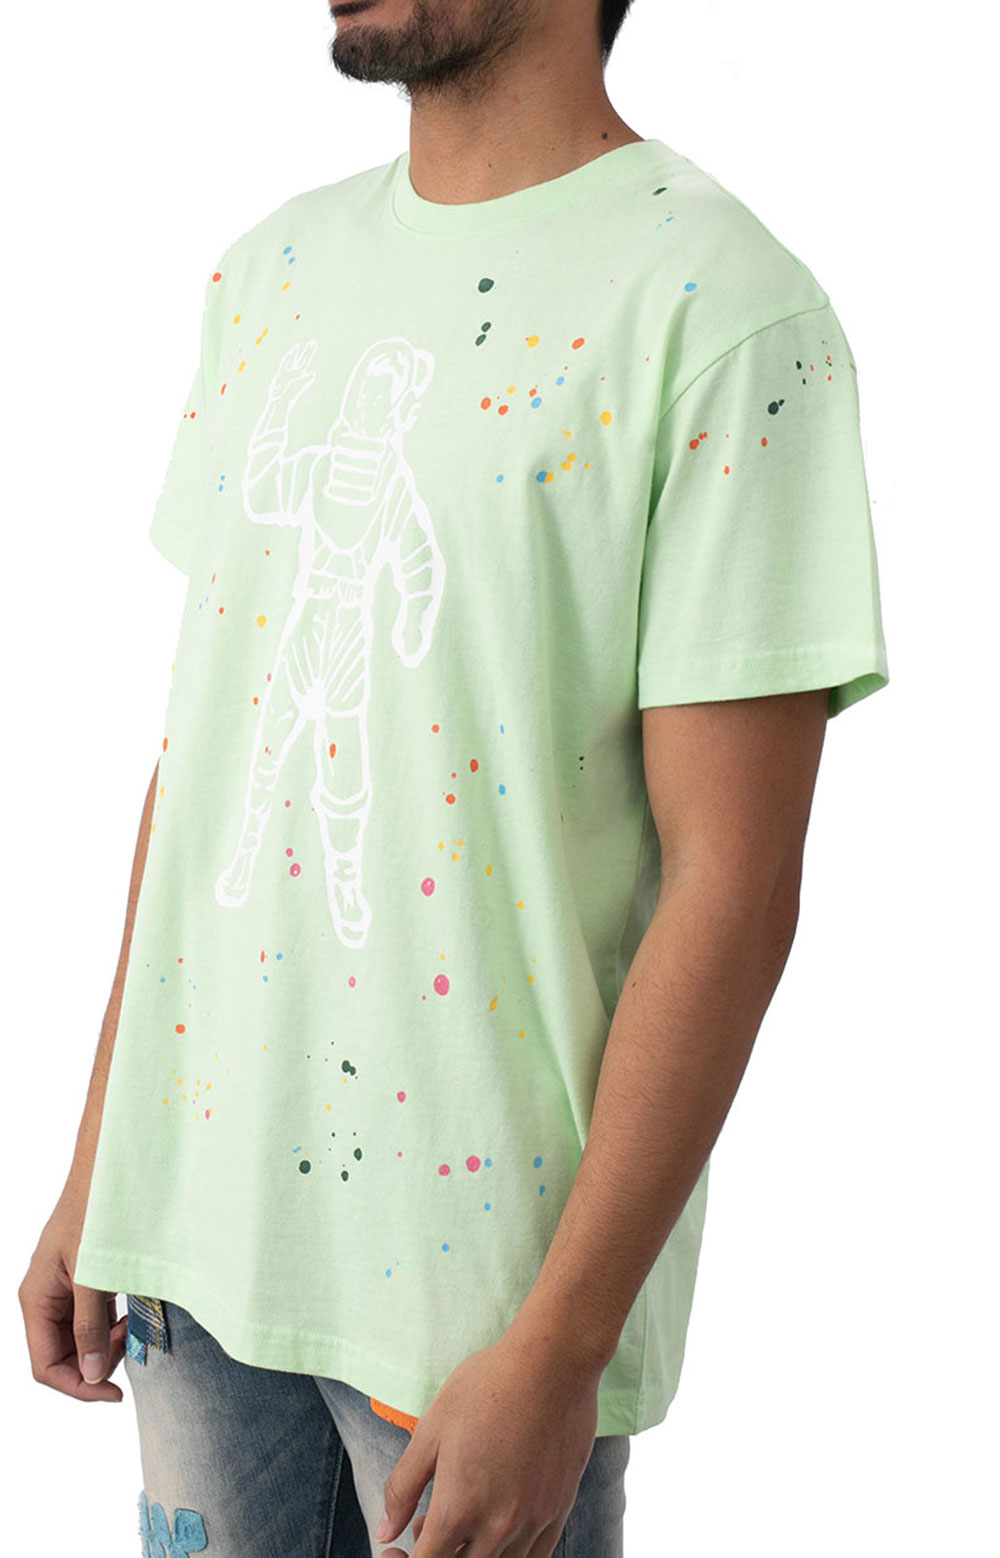 BB Astro Spattered SS Knit T-Shirt - Patina Green  2